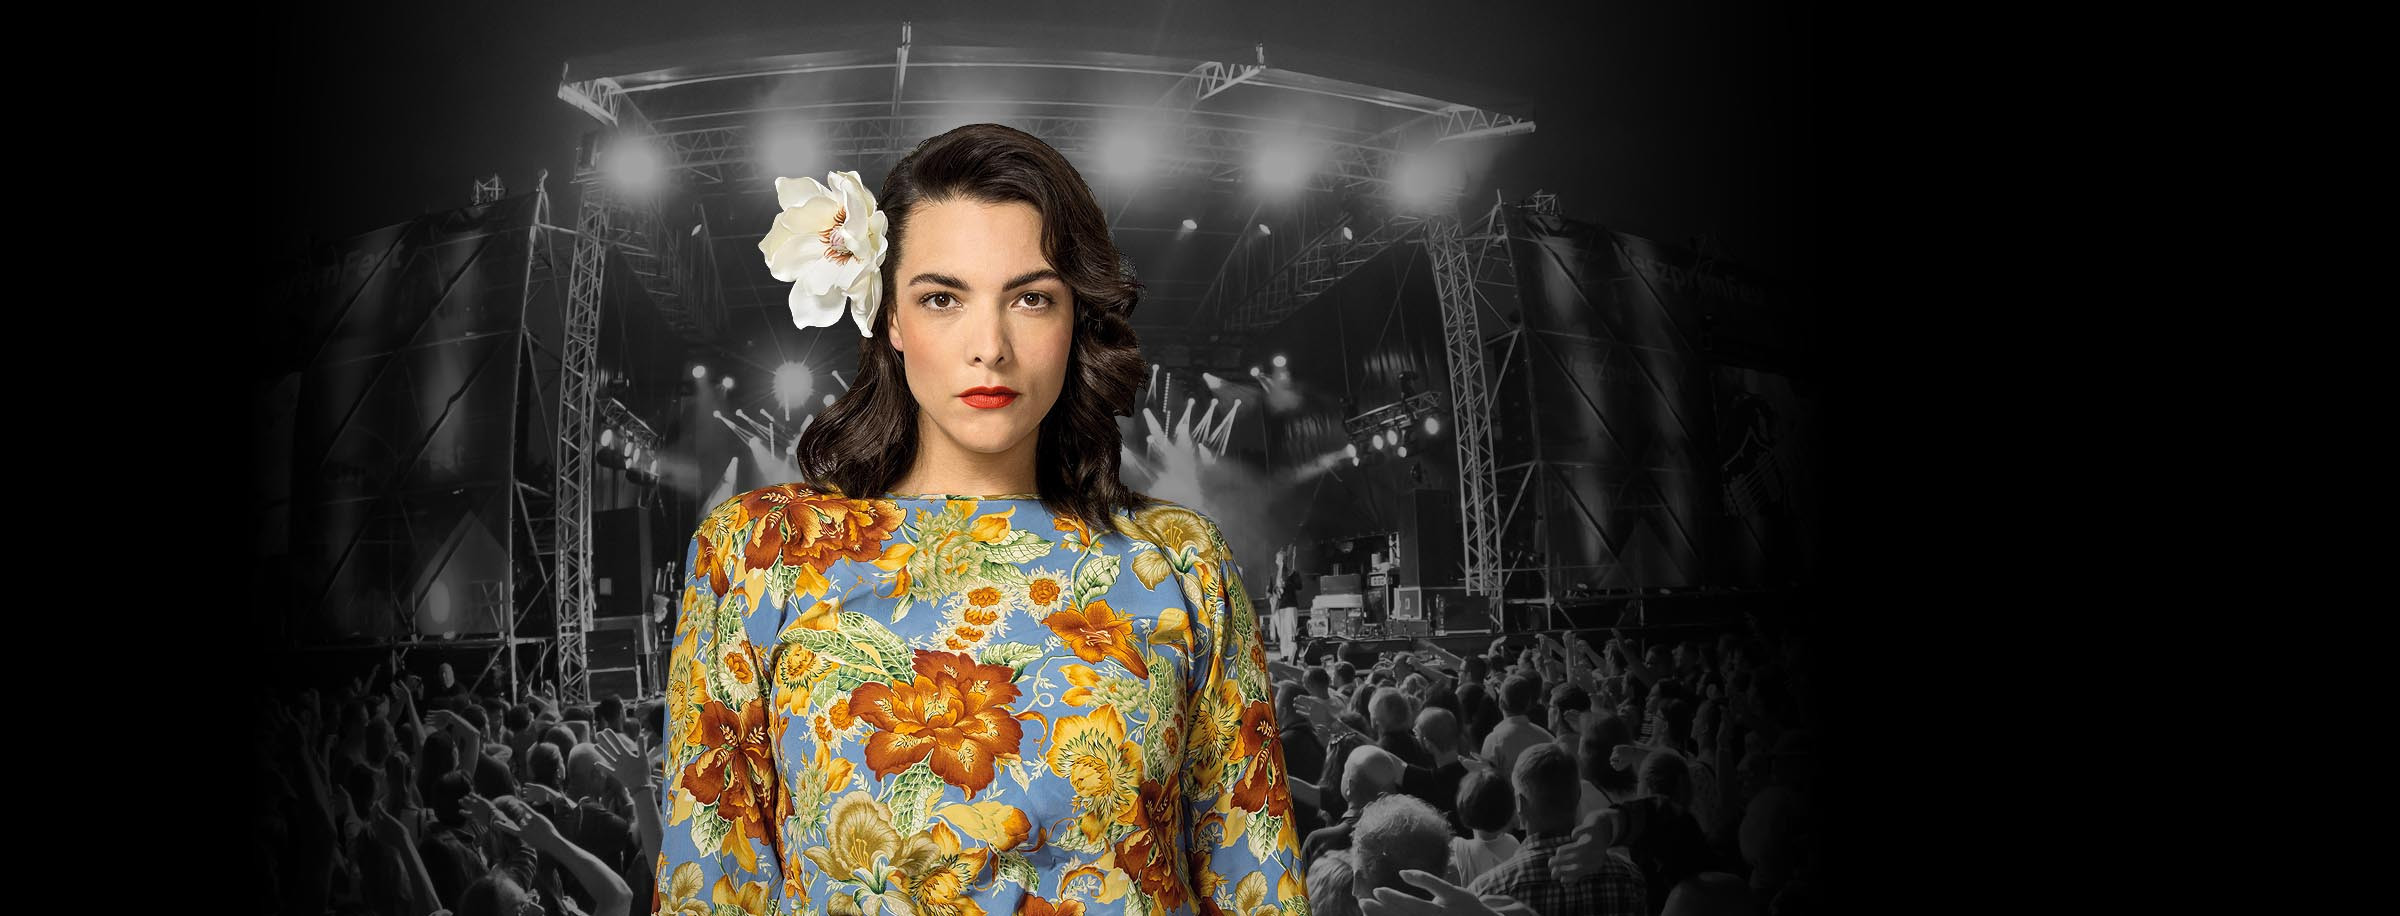 Caro Emerald Concert @ VeszprémFest In Hungary, 10 July